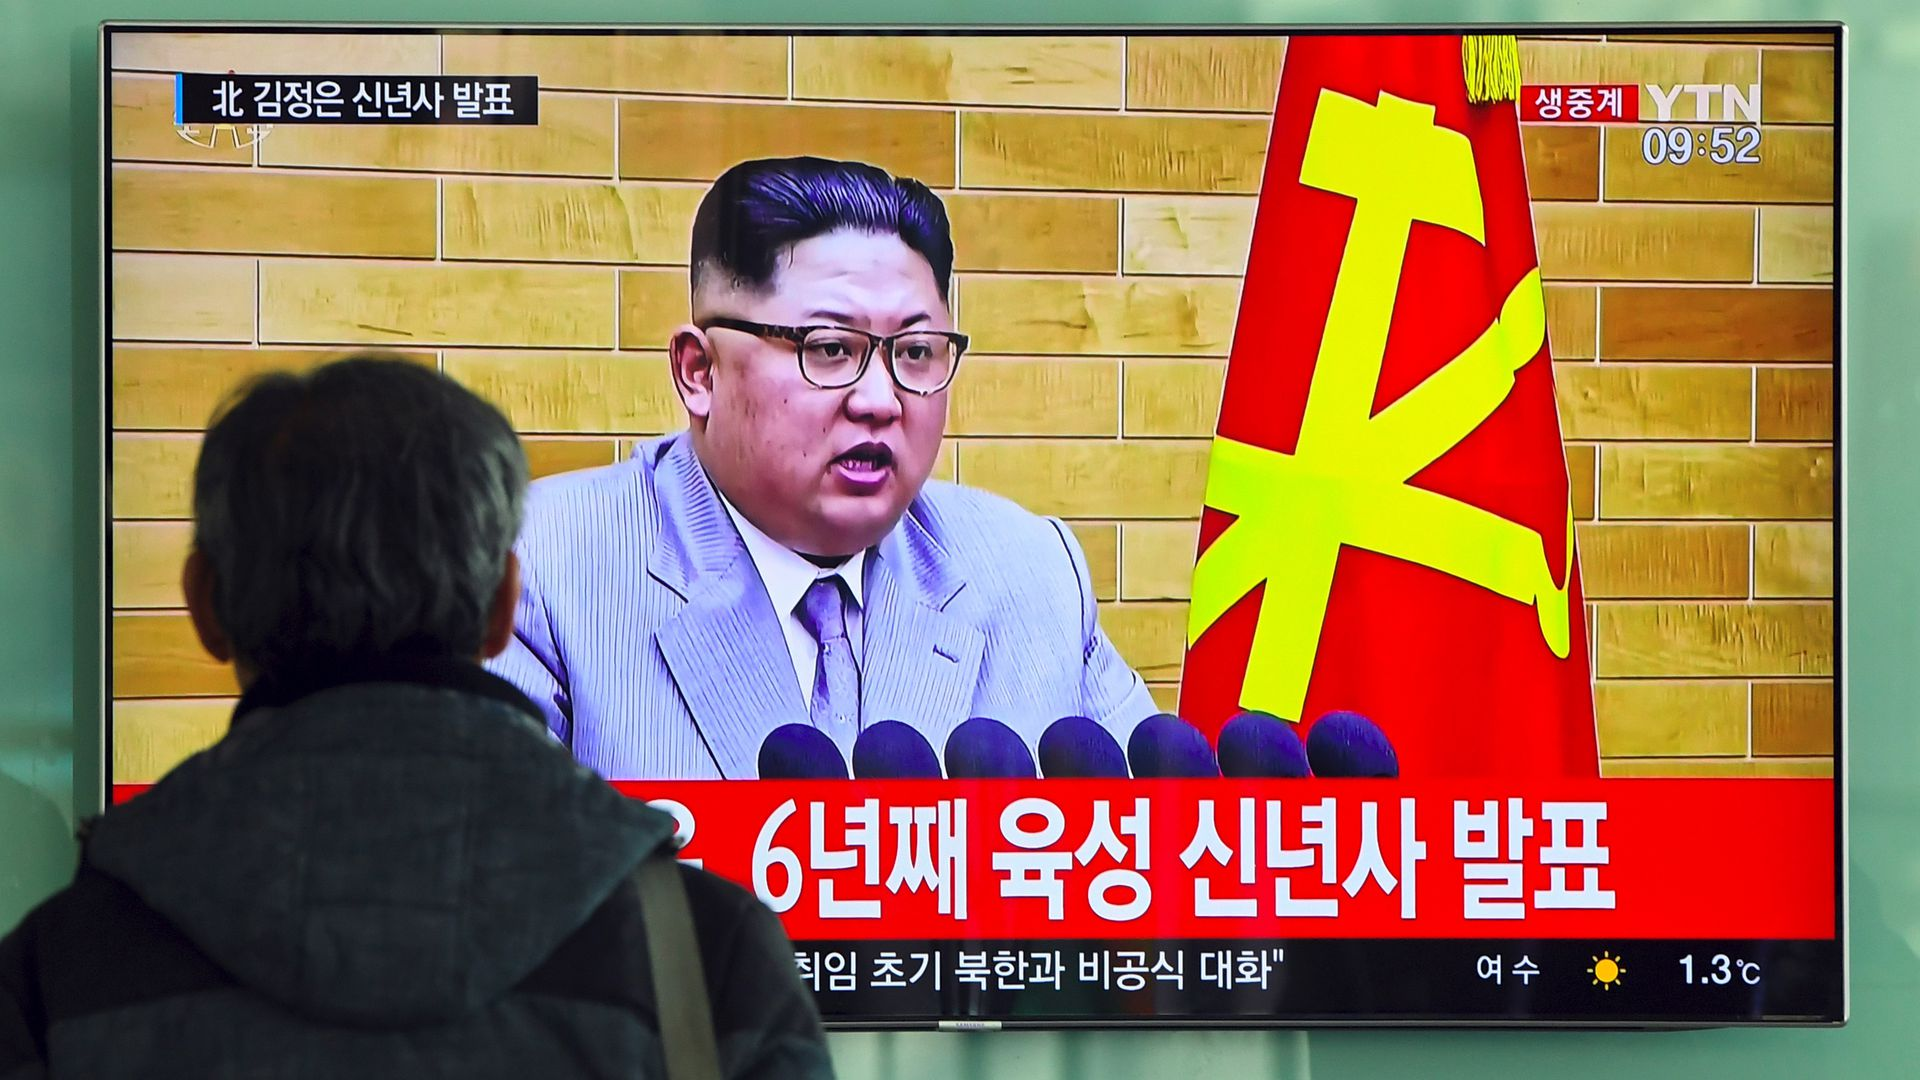 A man watches a television news broadcast showing Kim Jong-Un.